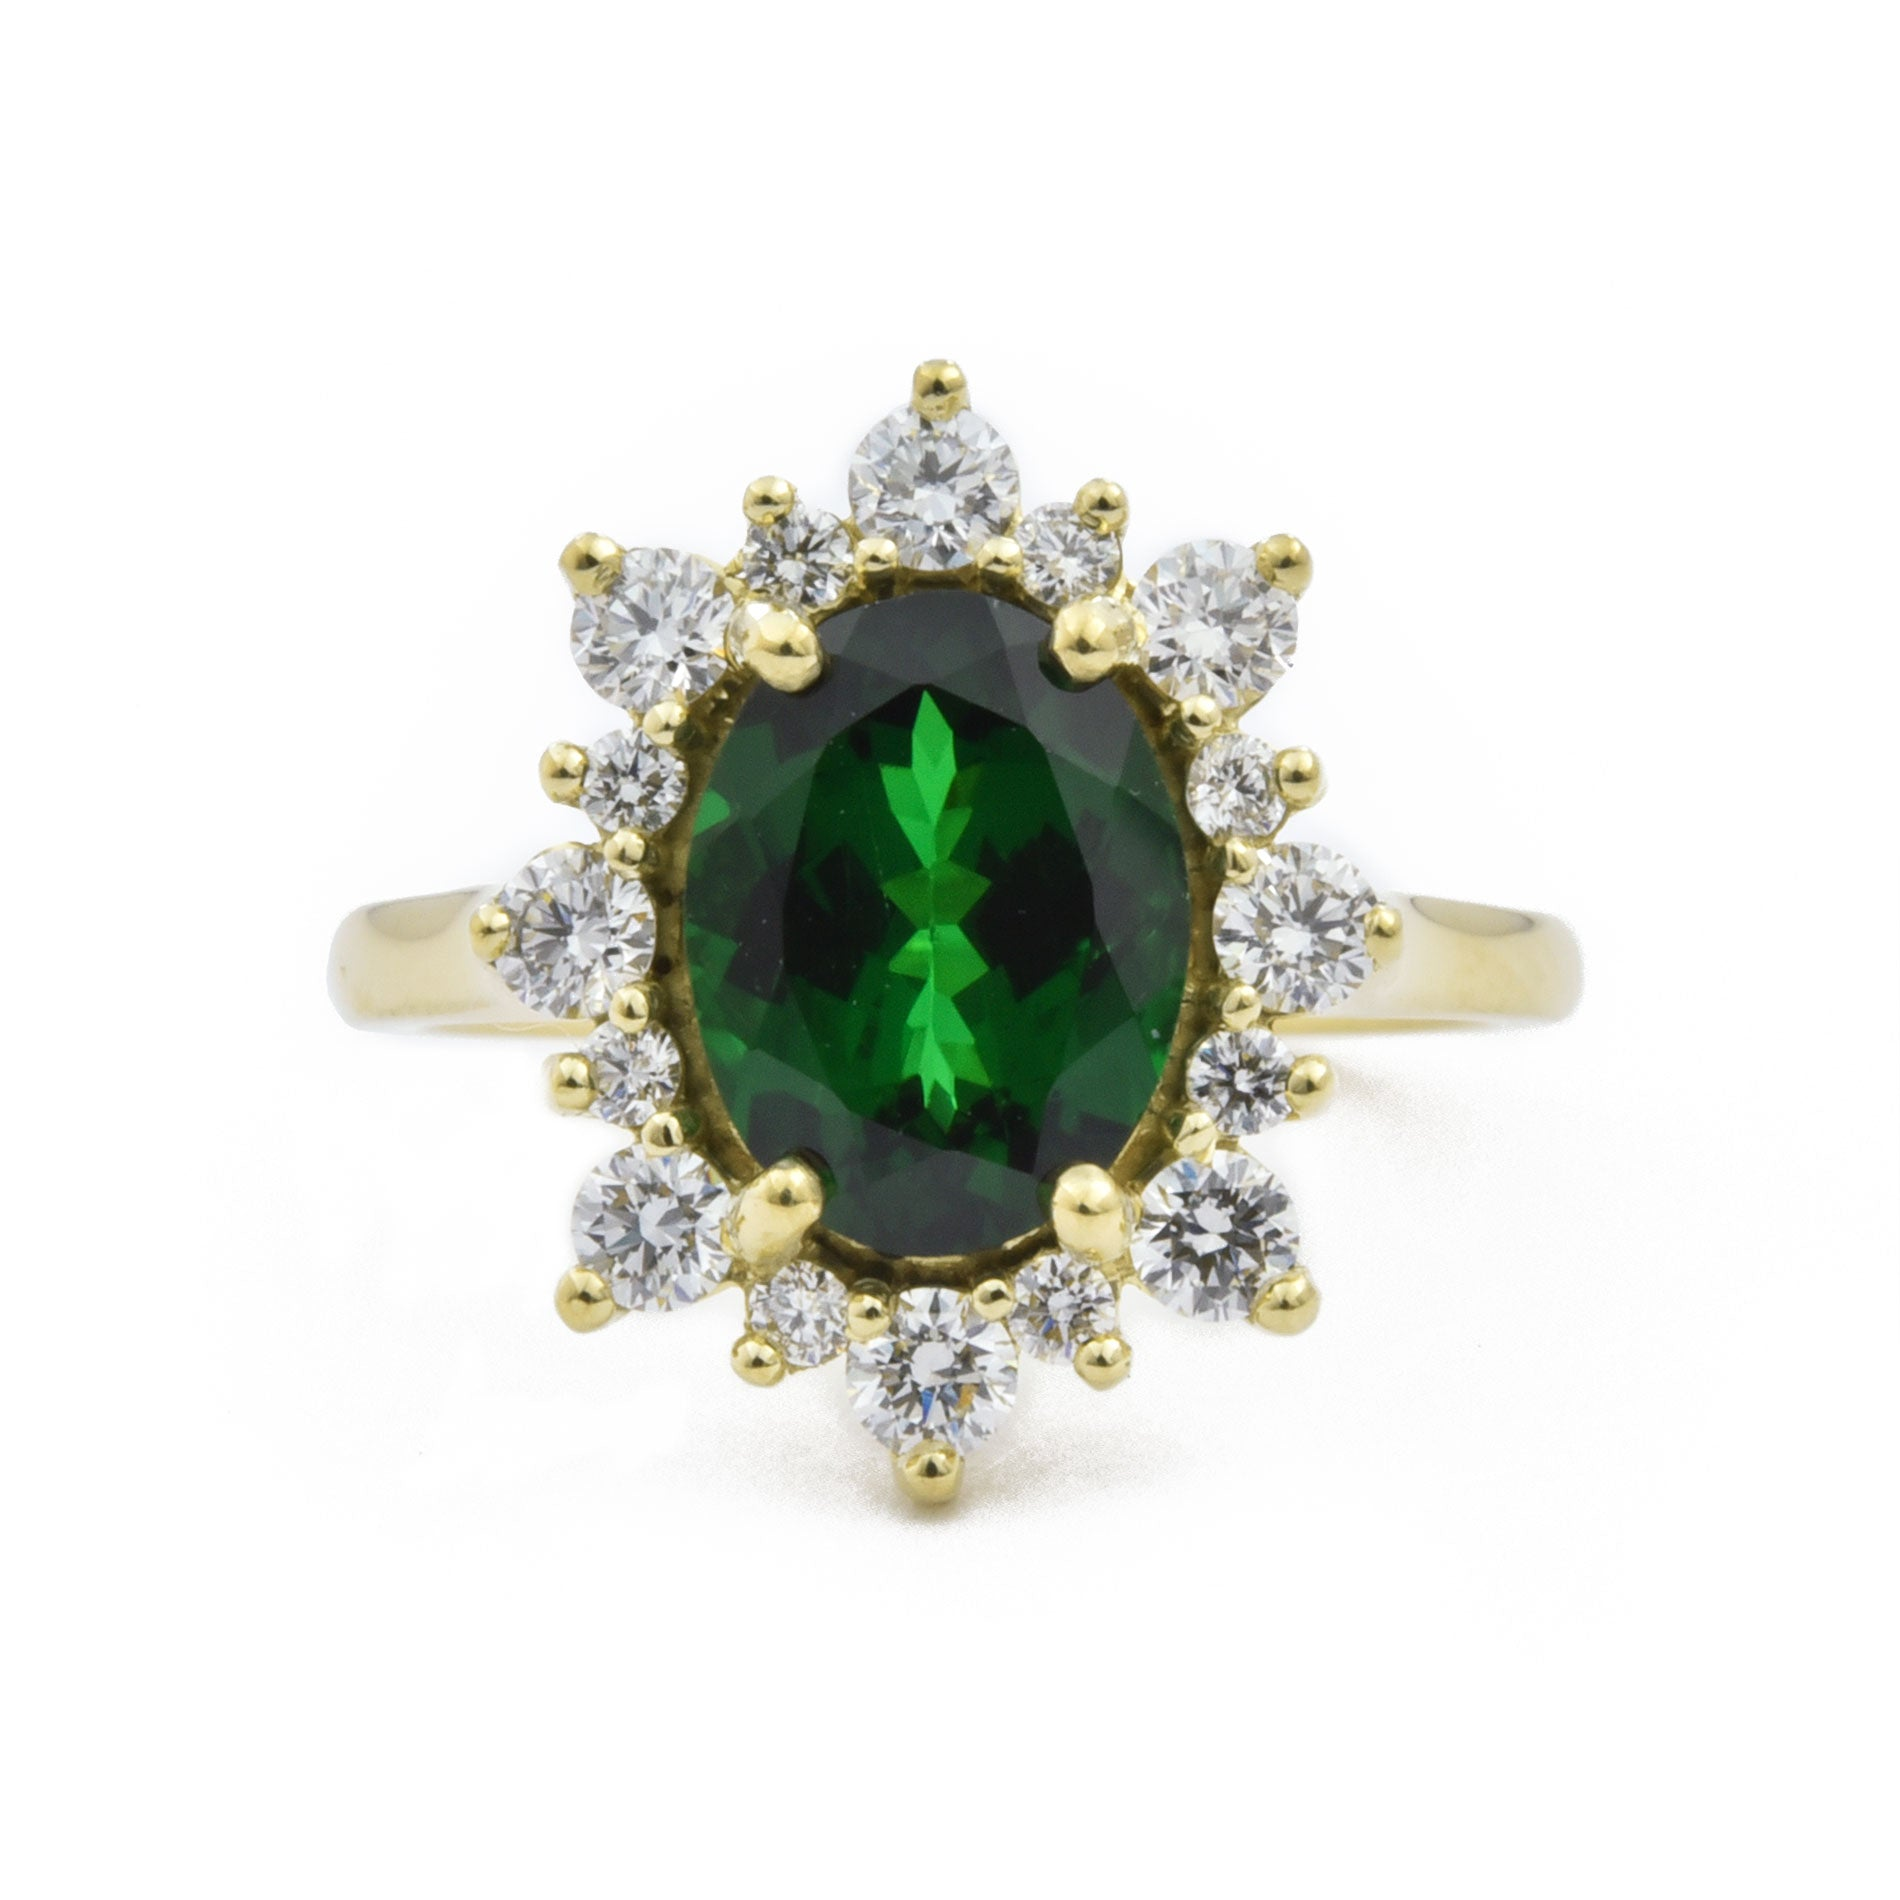 Tsavorite Garnet Canadian Diamond Halo Engagement Ring